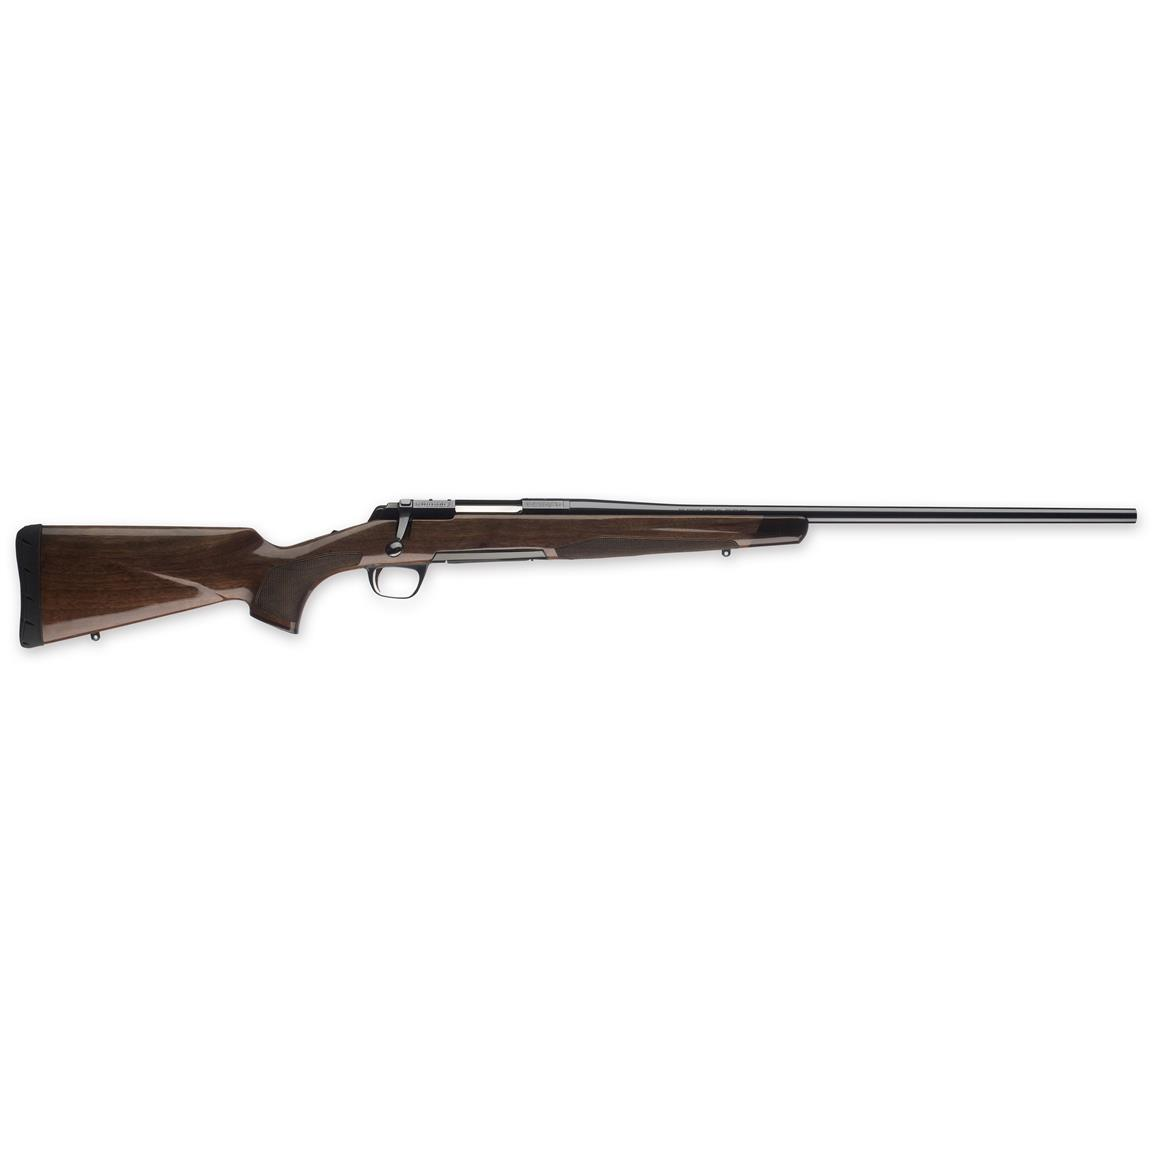 "Browning X-Bolt Medallion, Bolt Action, .30-06 Springfield, 22"" Barrel, 4+1 Rounds"